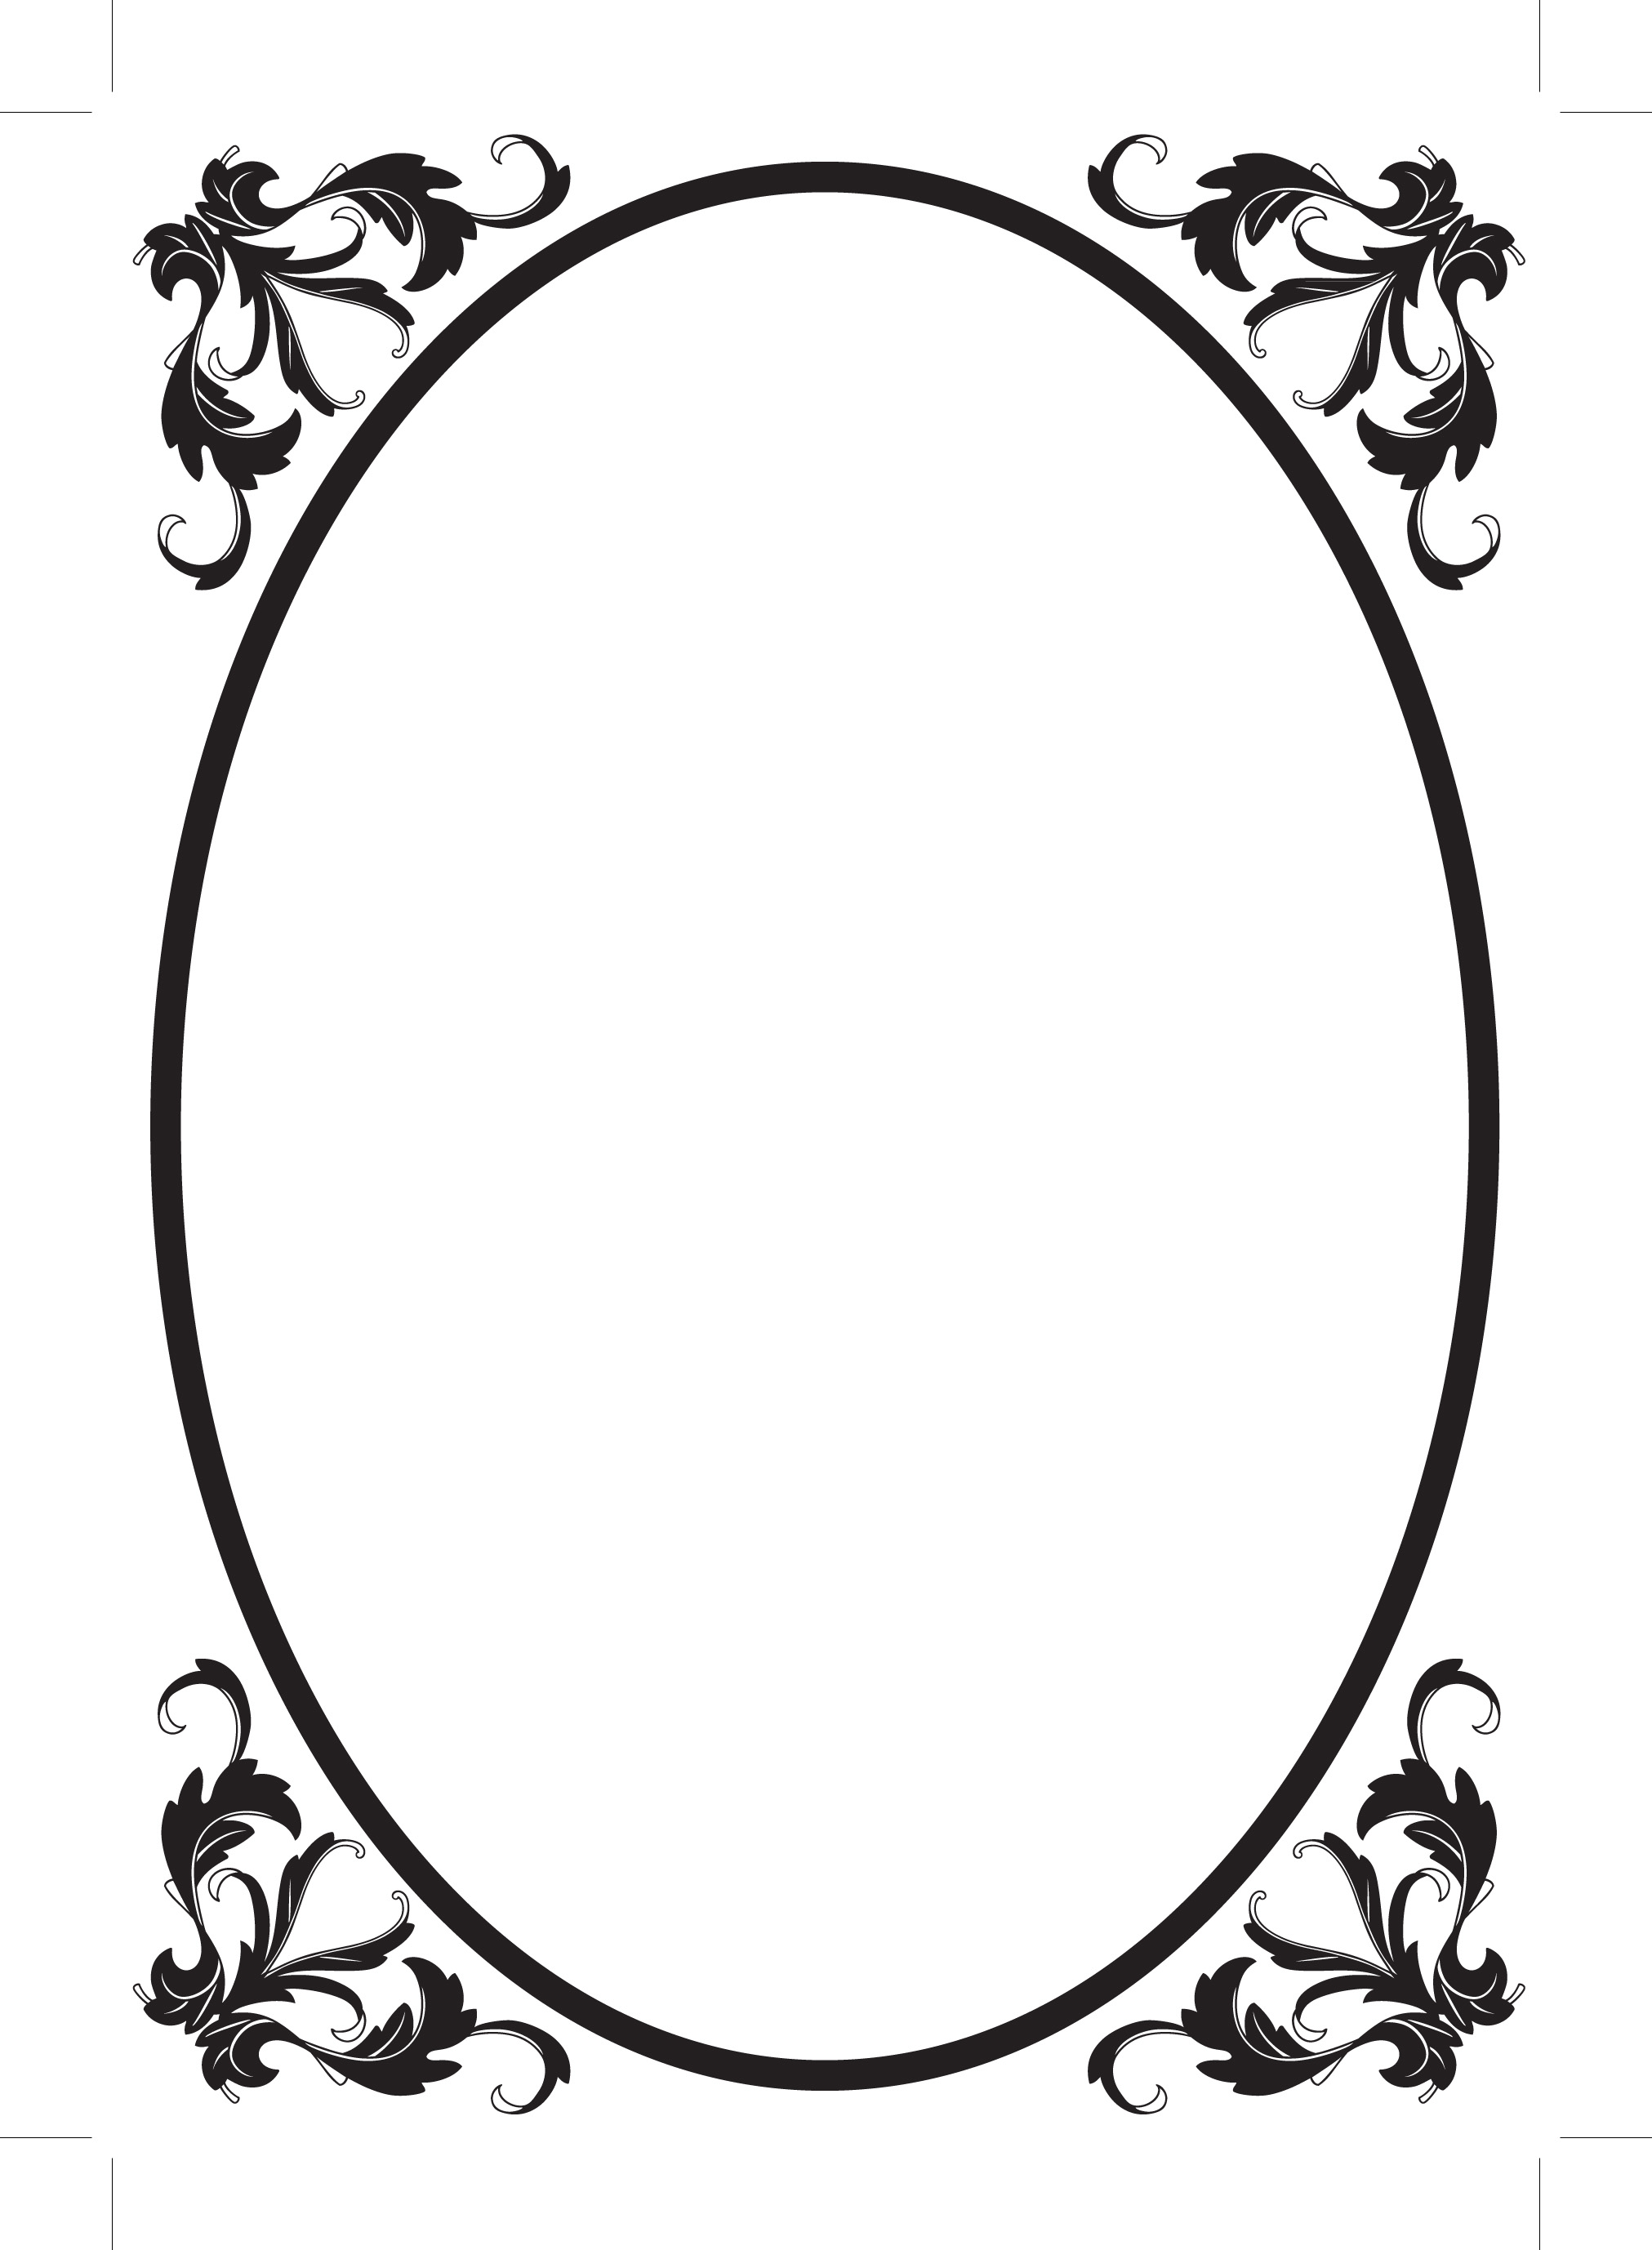 Oval Frame Clipart | Clipart Panda - Free Clipart Images